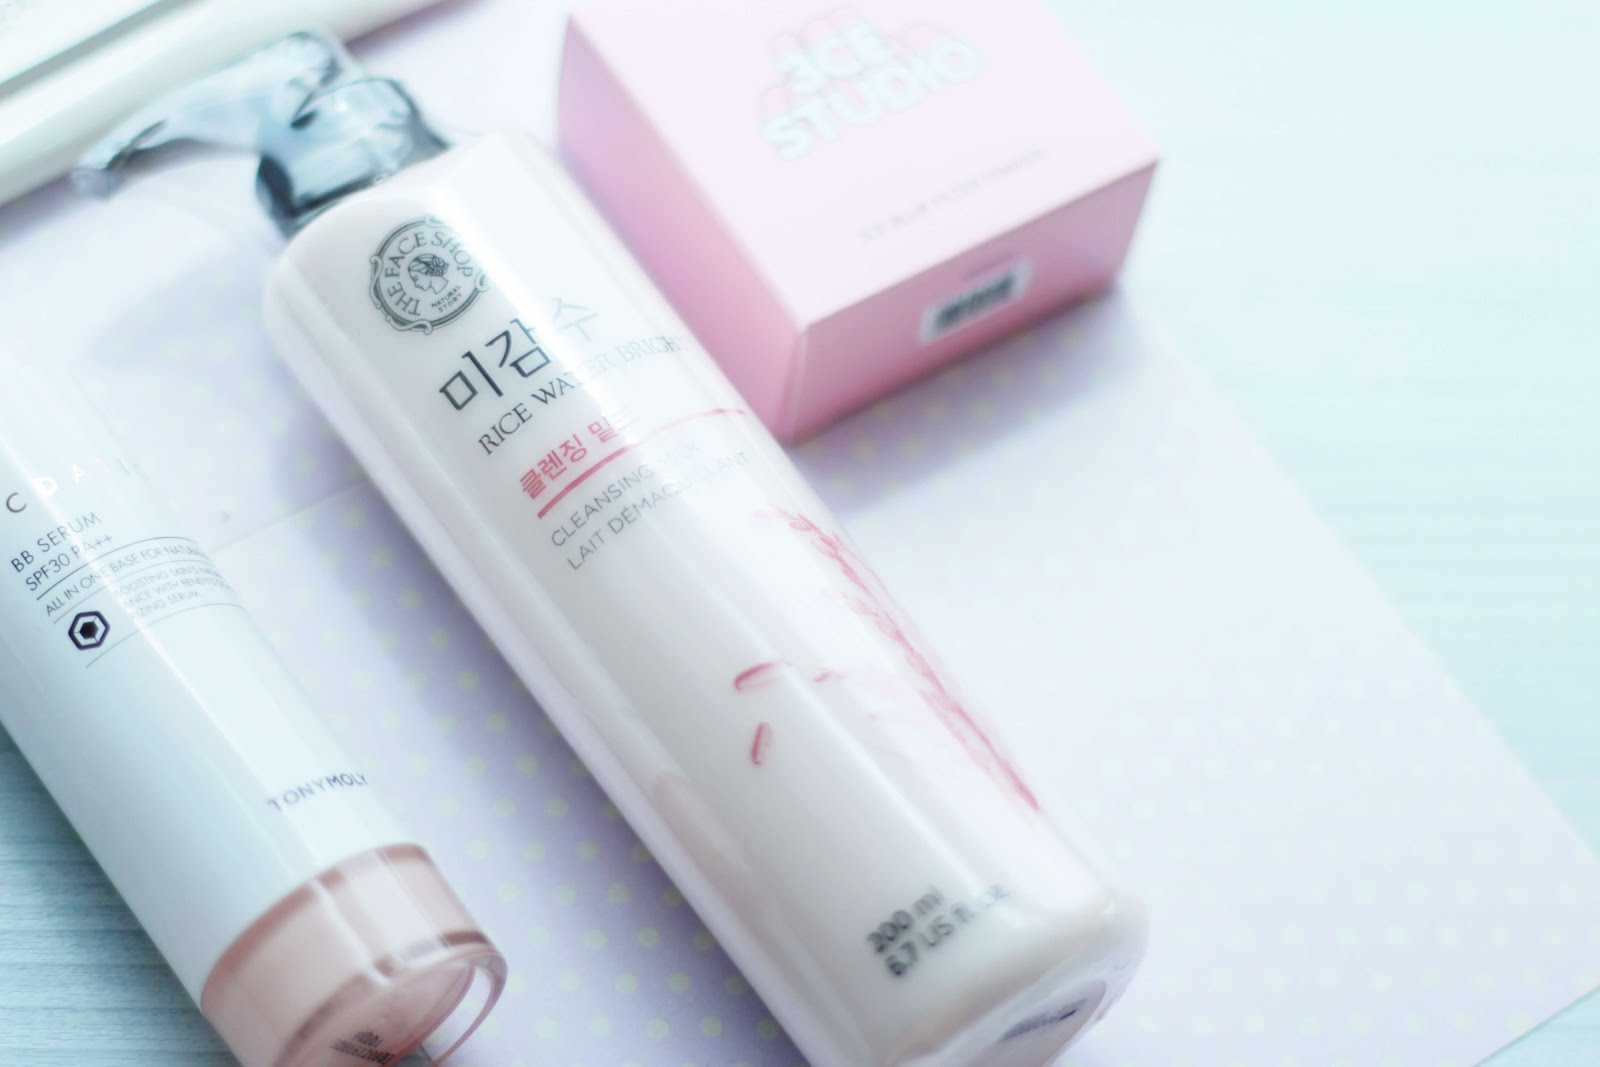 Collective Korean Beauty Haul: 3CE, Chosungah Beauty, Etude House + more